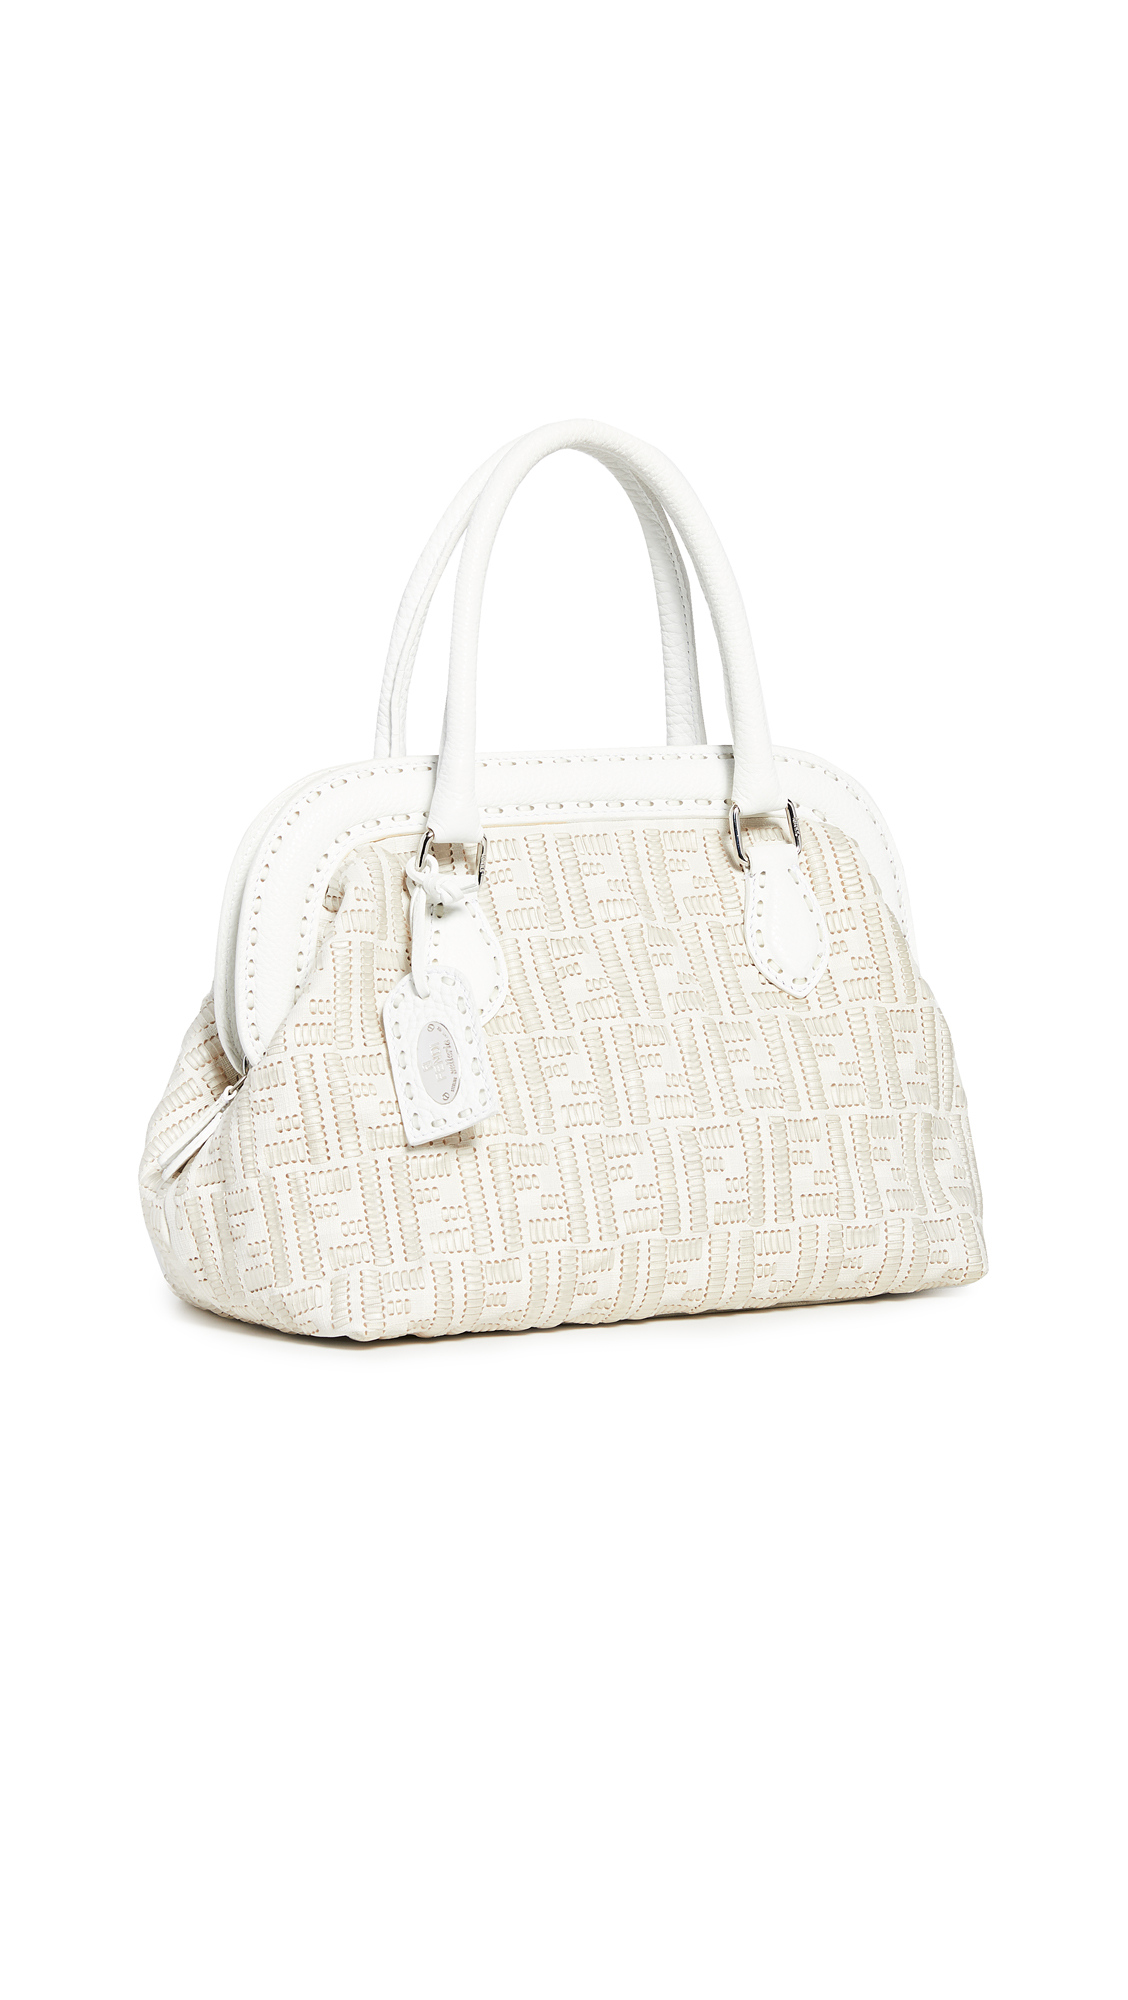 e266d236cebf WHAT GOES AROUND COMES AROUND | What Goes Around Comes Around Fendi White  Woven Handbag |. SHOP